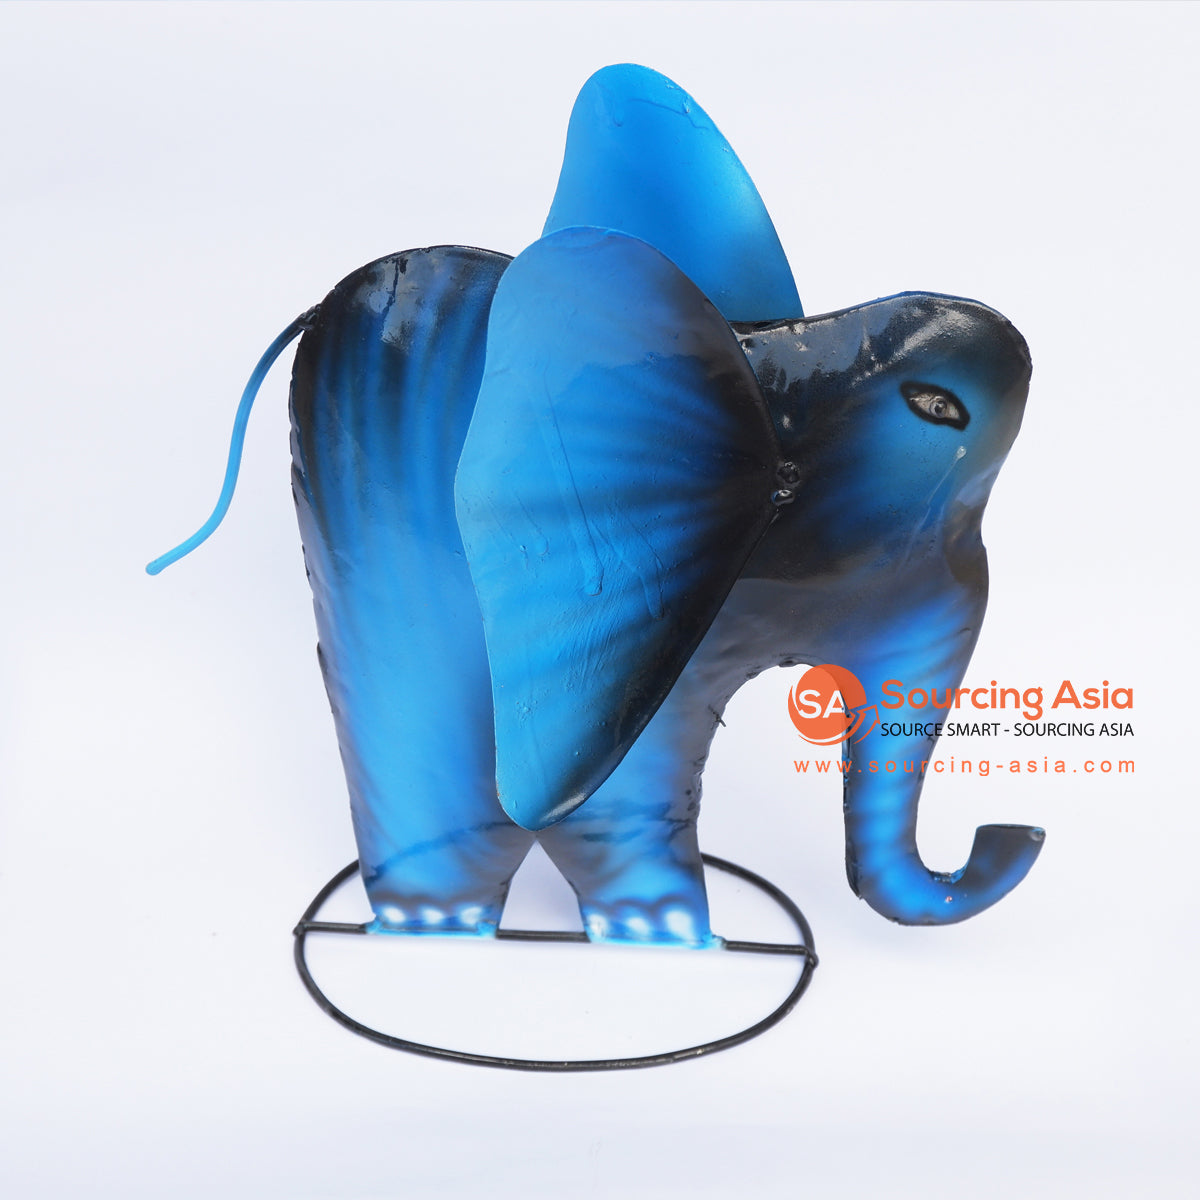 PEBC166 BLUE AND BLACK AIRBRUSHED PAINTED METAL ELEPHANT DECORATION